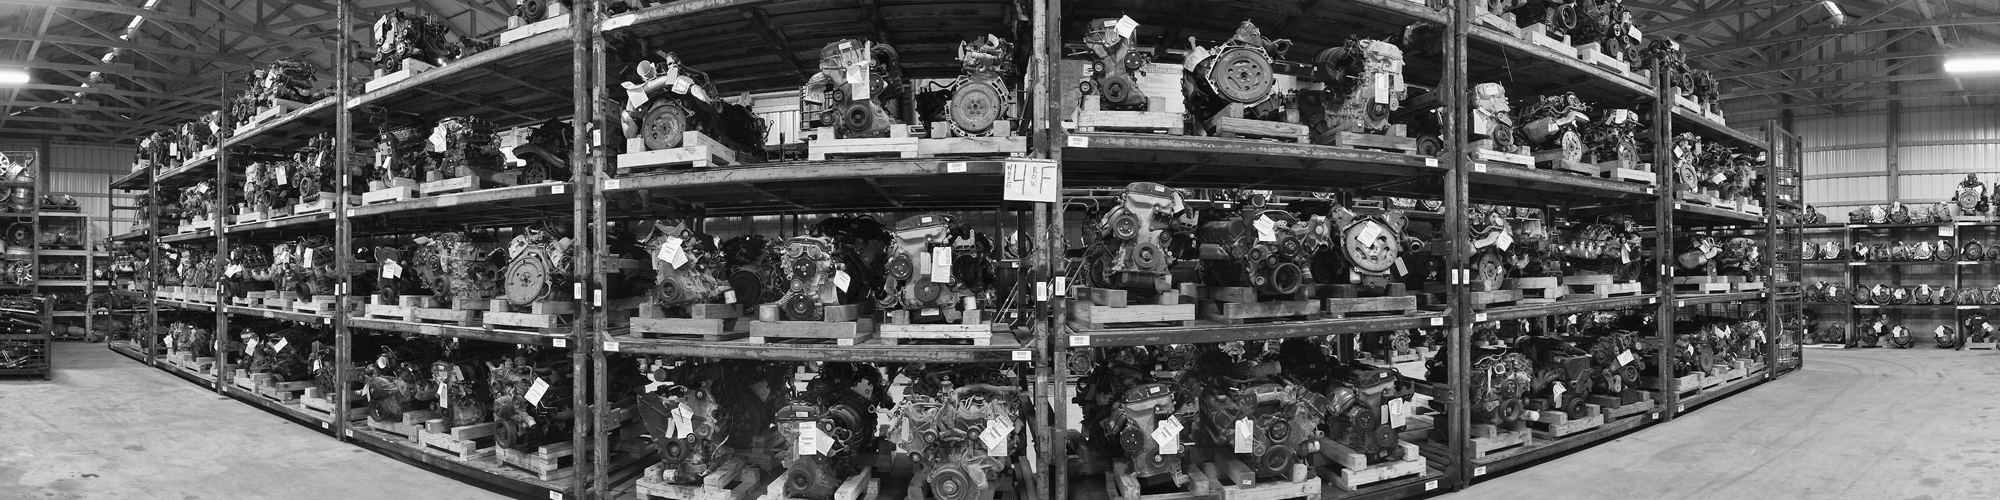 Used engines in the warehouse at Doug's Auto Recyclers in Coldwater, MI